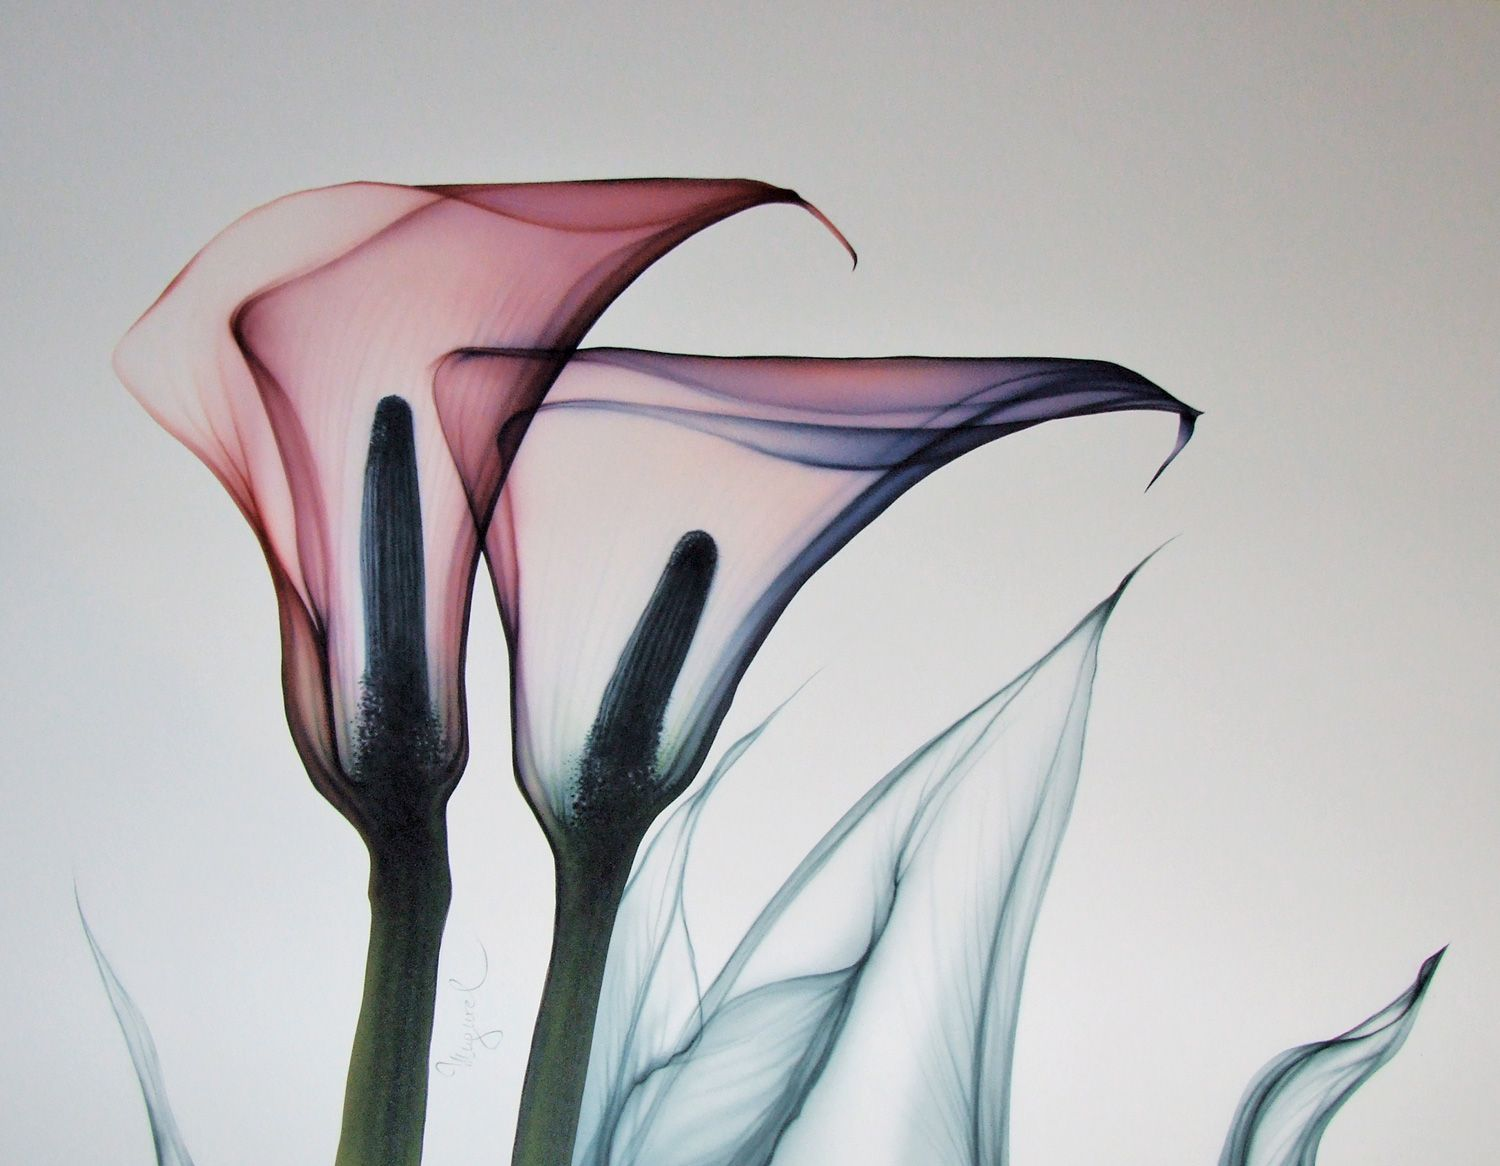 Flower copy from x ray photo art inspiration pinterest flower copy from x ray photo izmirmasajfo